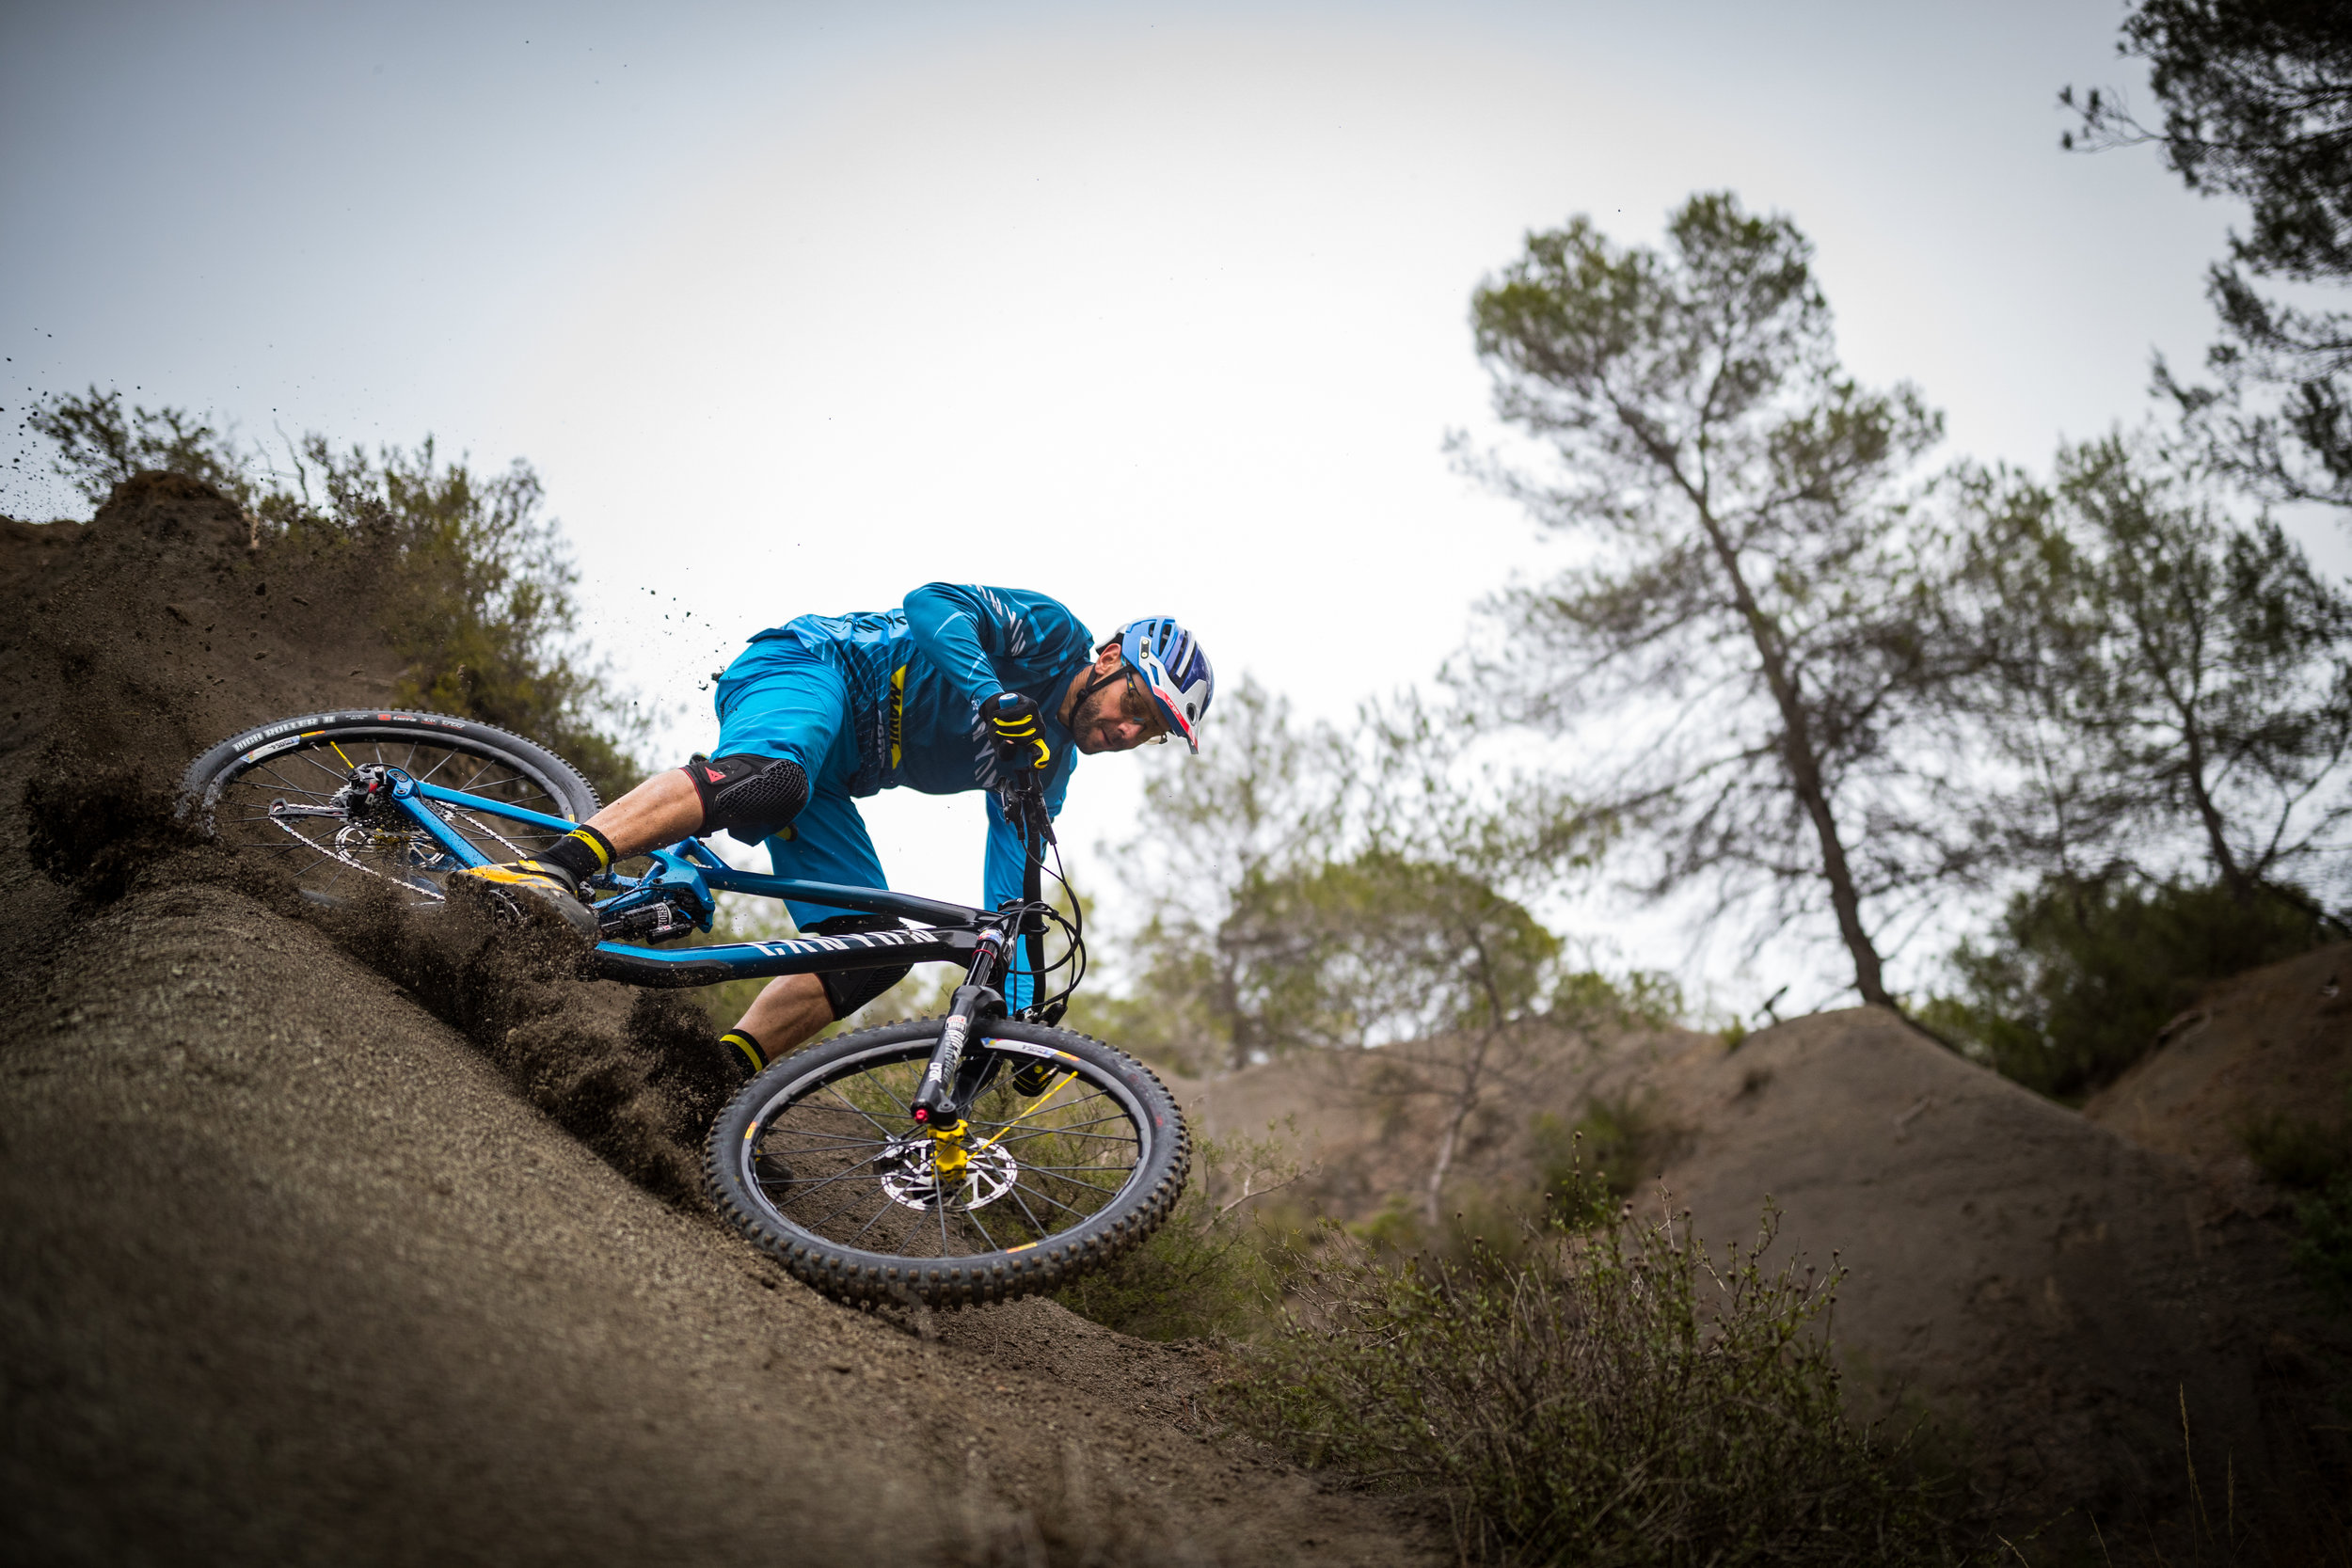 Fabien Barel will lead the program again in 2018. Copyright: Canyon Bicycles Markus Greber